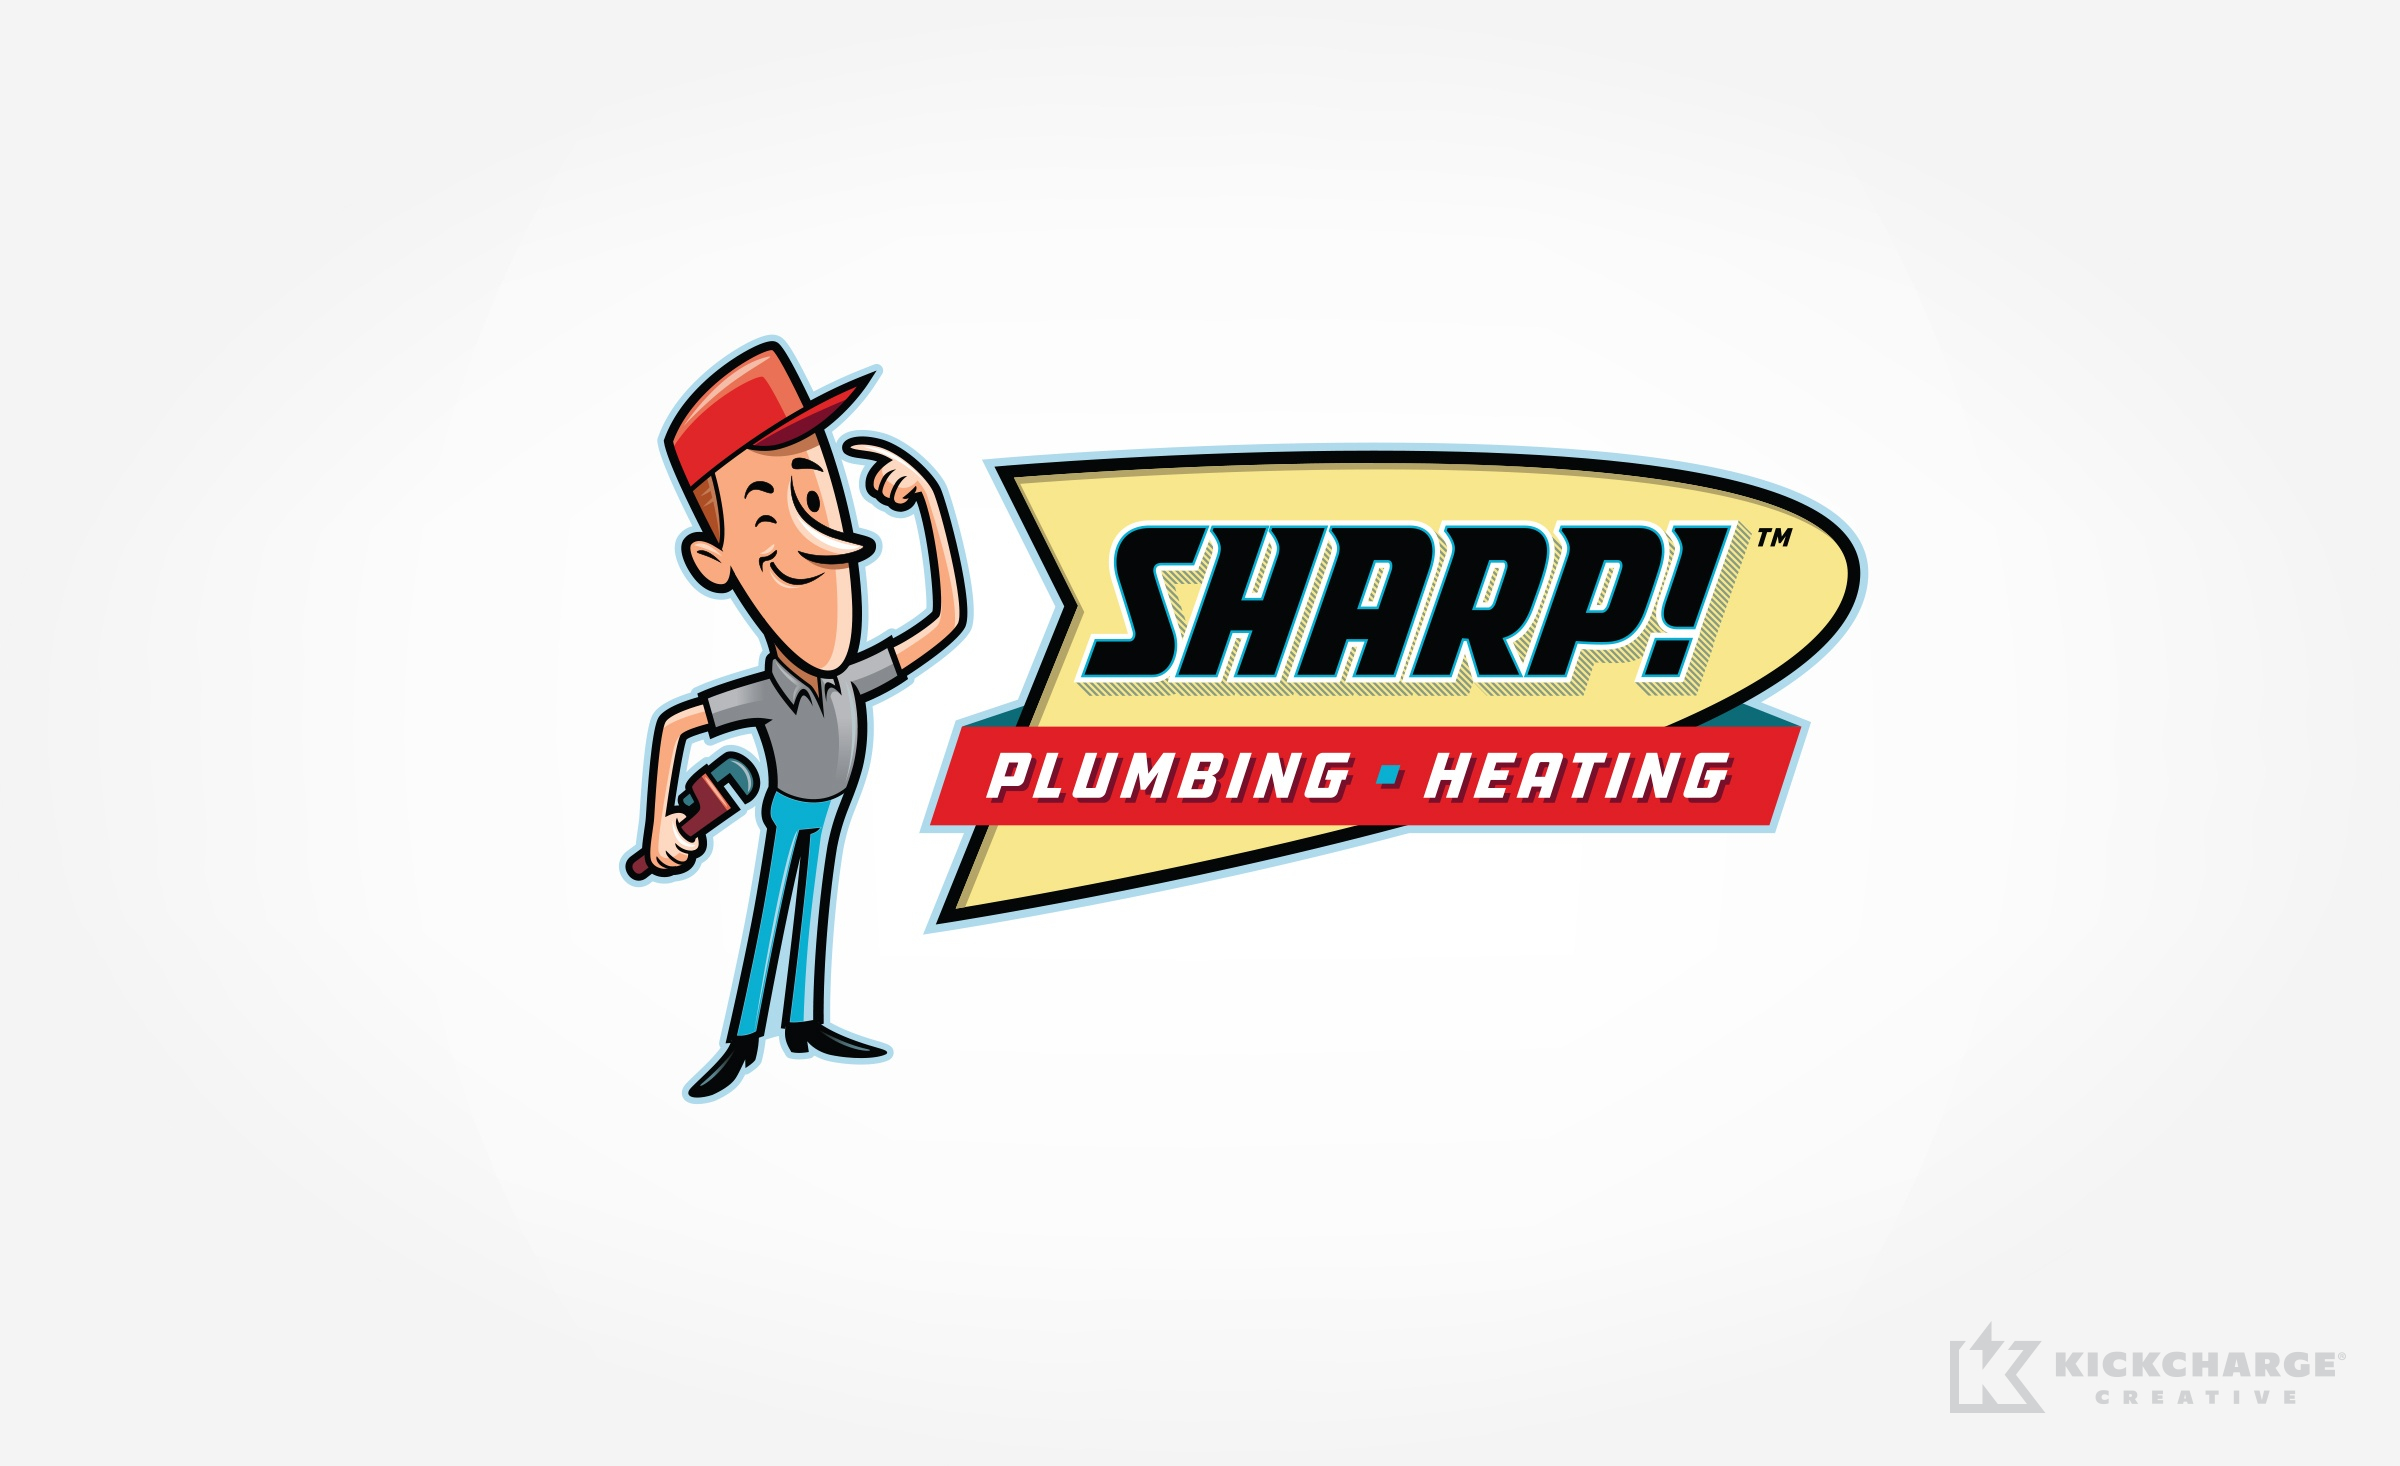 plumbing and hvac logo for Sharp! Plumbing & Heating